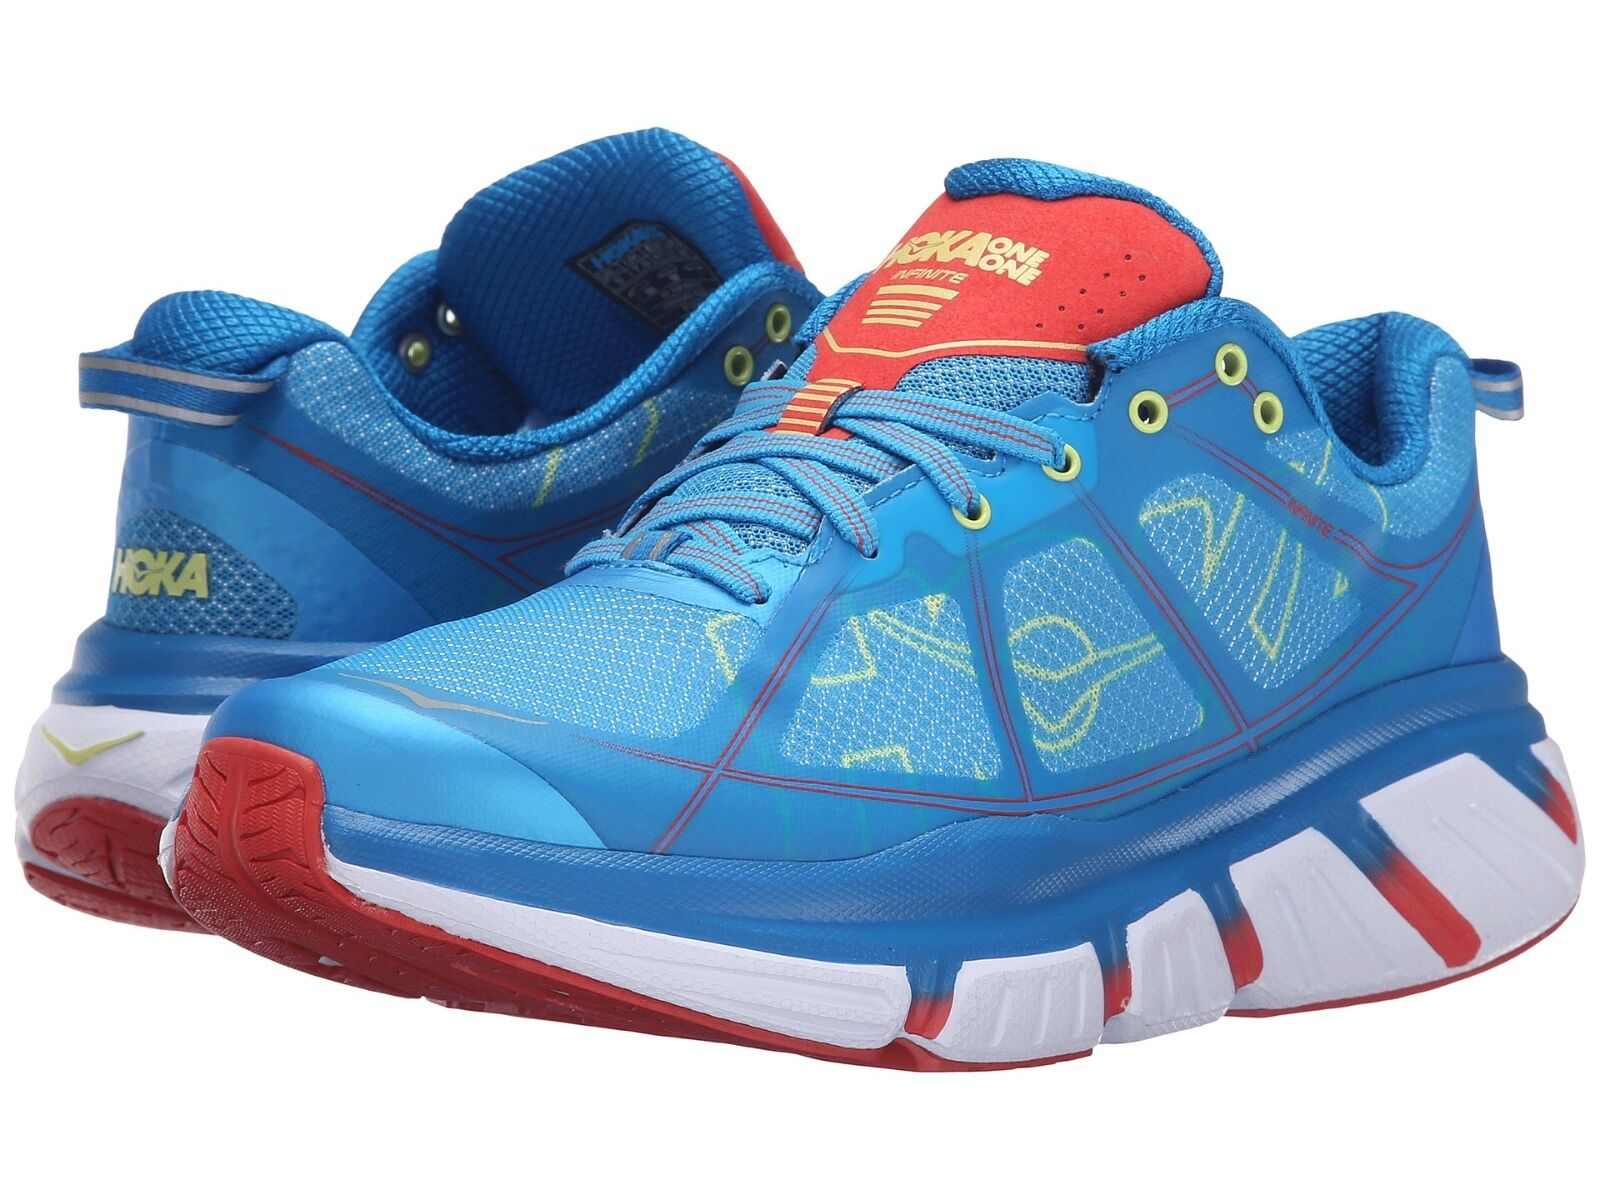 Hoka One One Womens Infinite Sneakers Athletic Shoes Dresden Blue Poppy Red 10.5